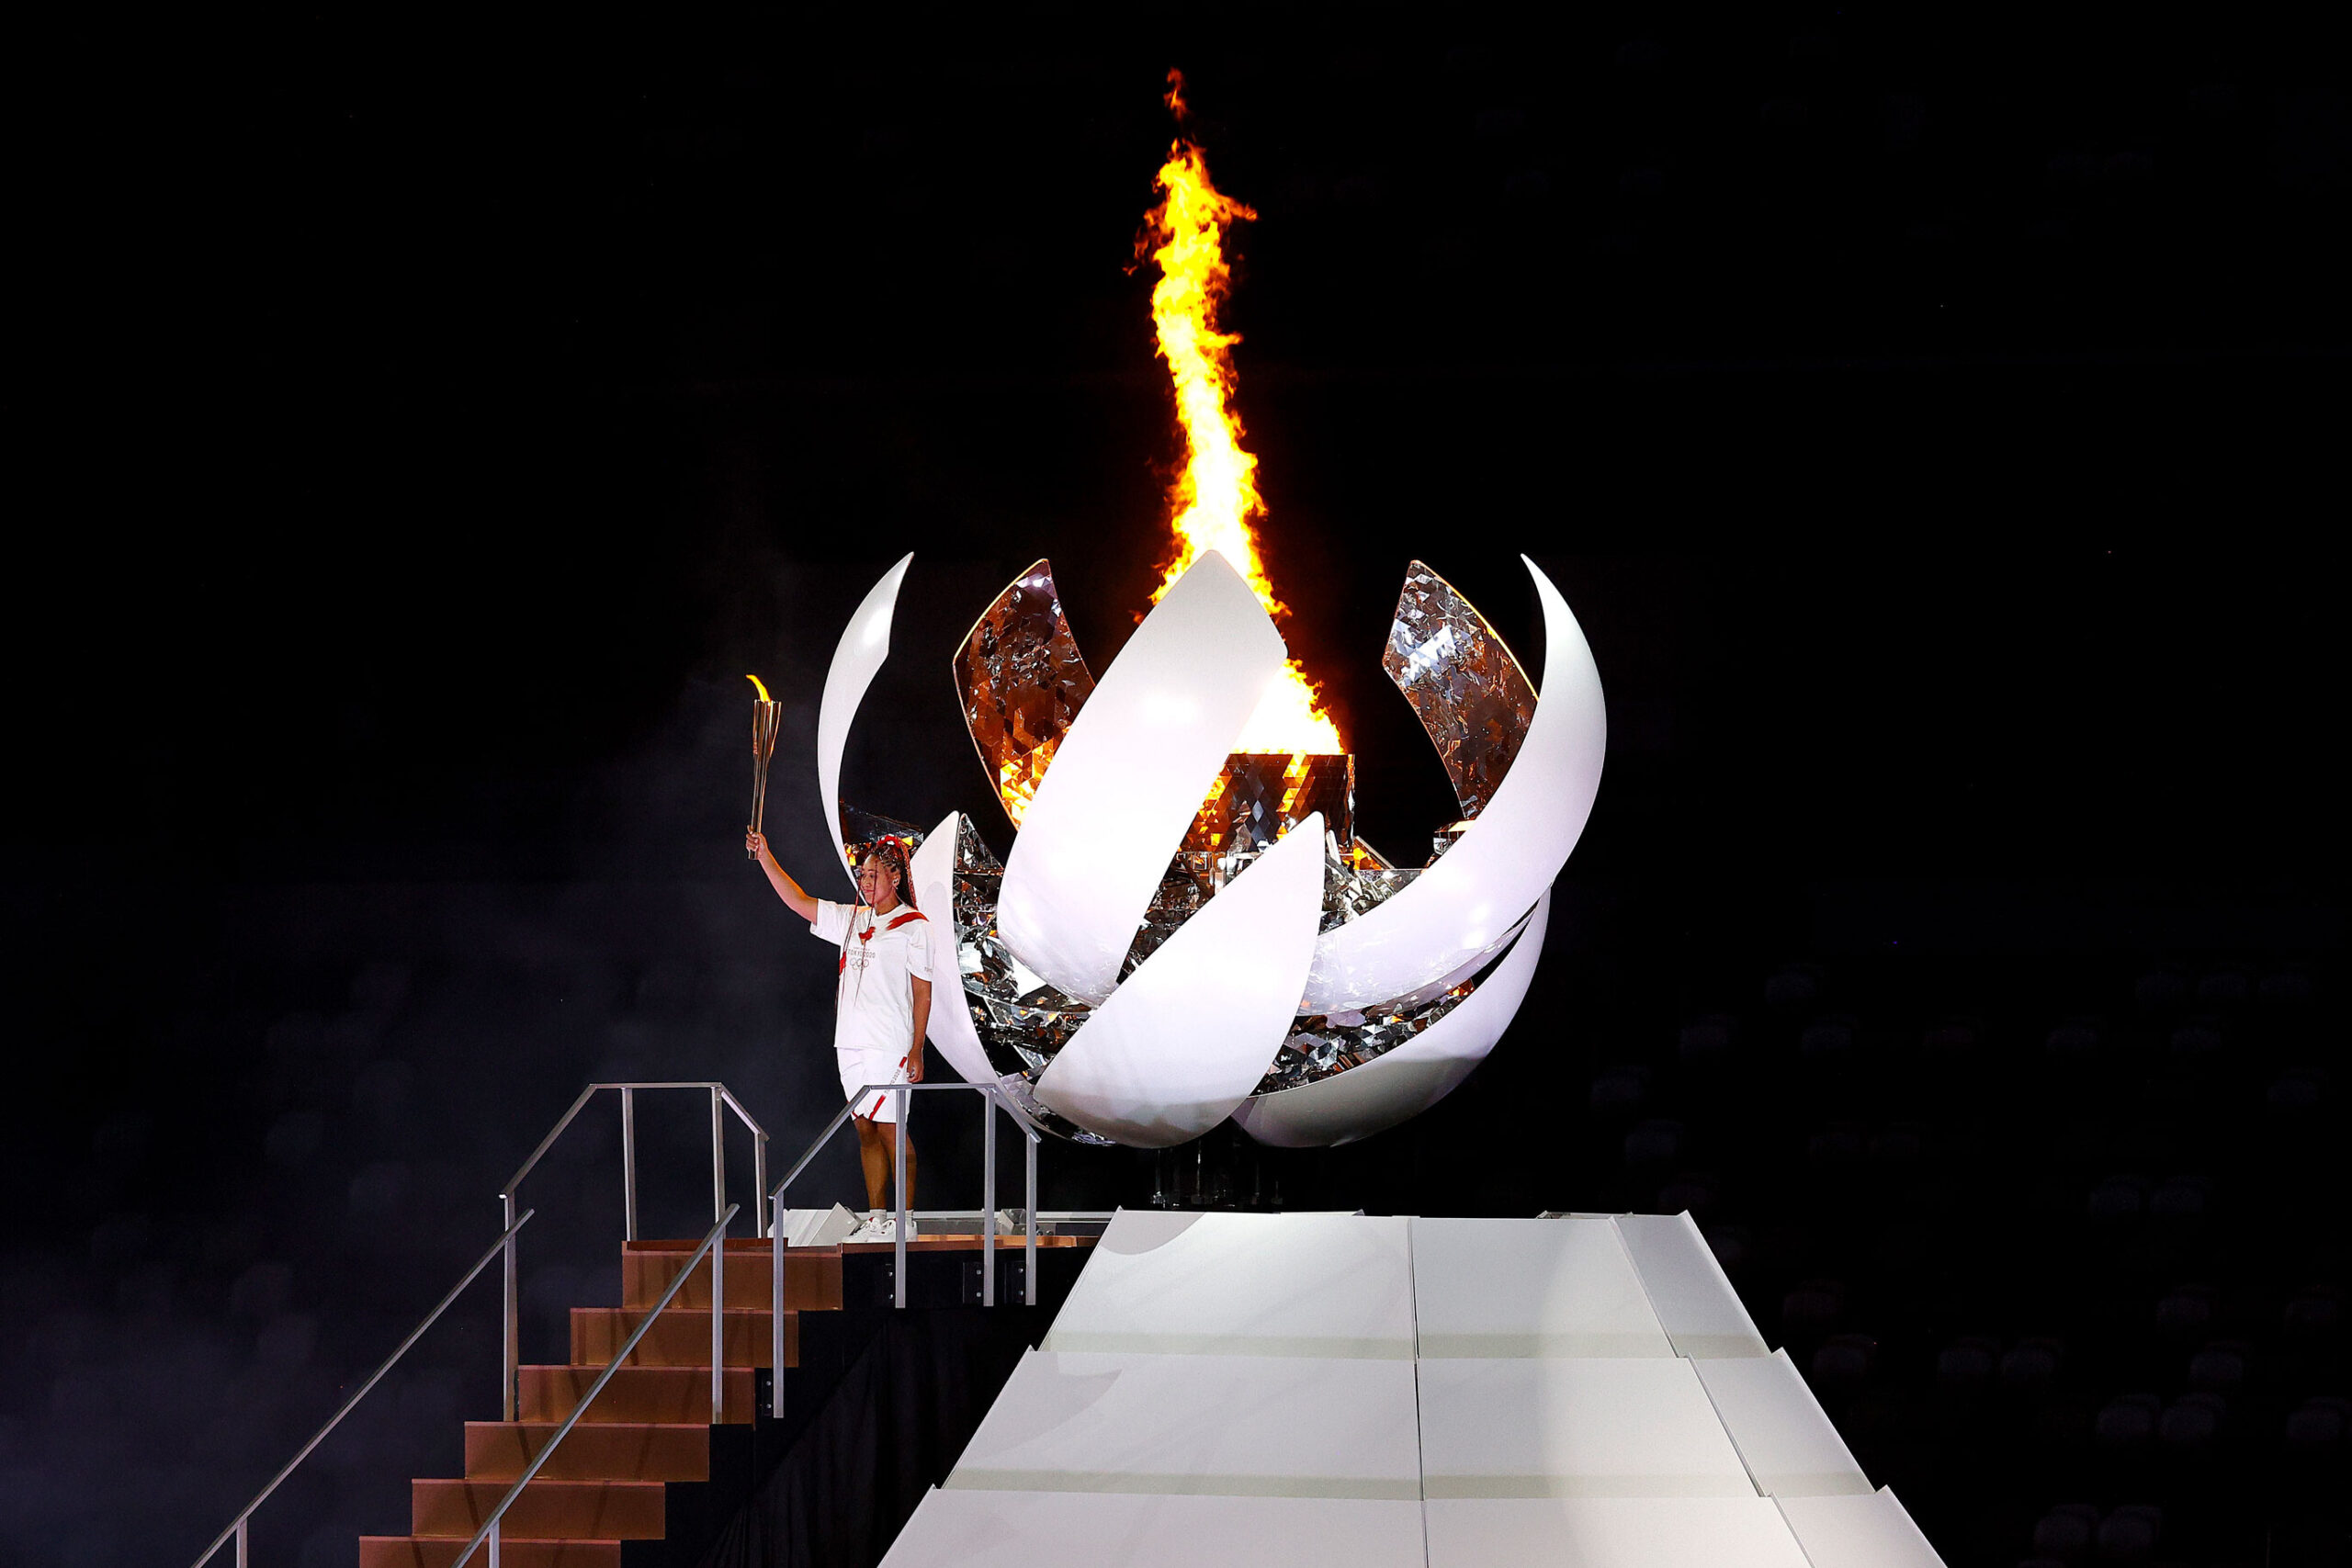 <i>Maddie Meyer/Getty Images</i><br/>Naomi Osaka gestures after lighting the Olympic cauldron during the opening ceremony at the Olympic Stadium.